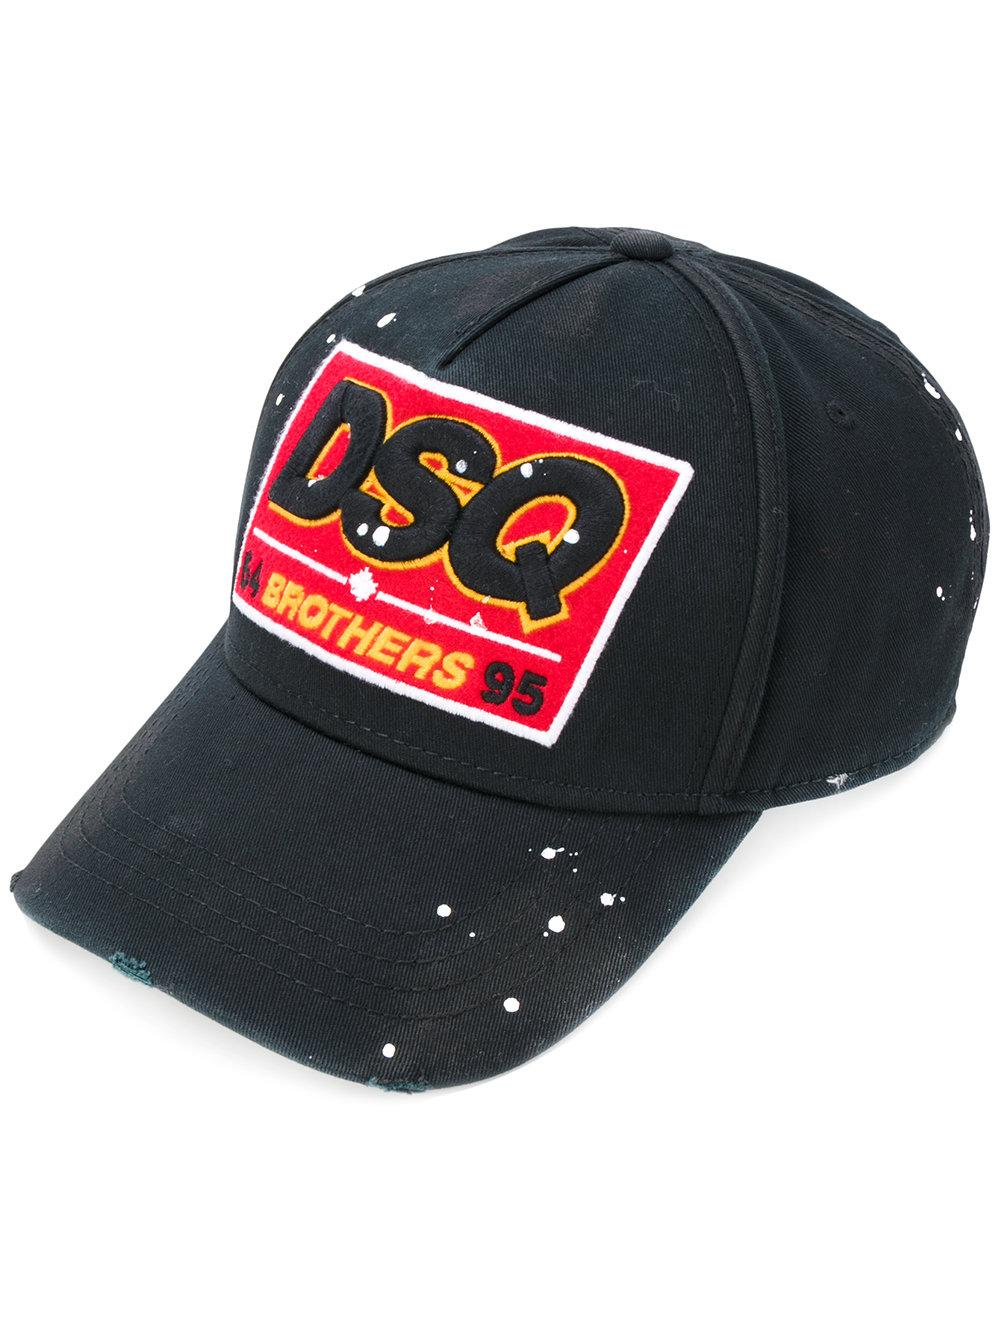 DSquared² Dsq Patch Baseball Cap in Black for Men - Lyst 0d0d59202f8